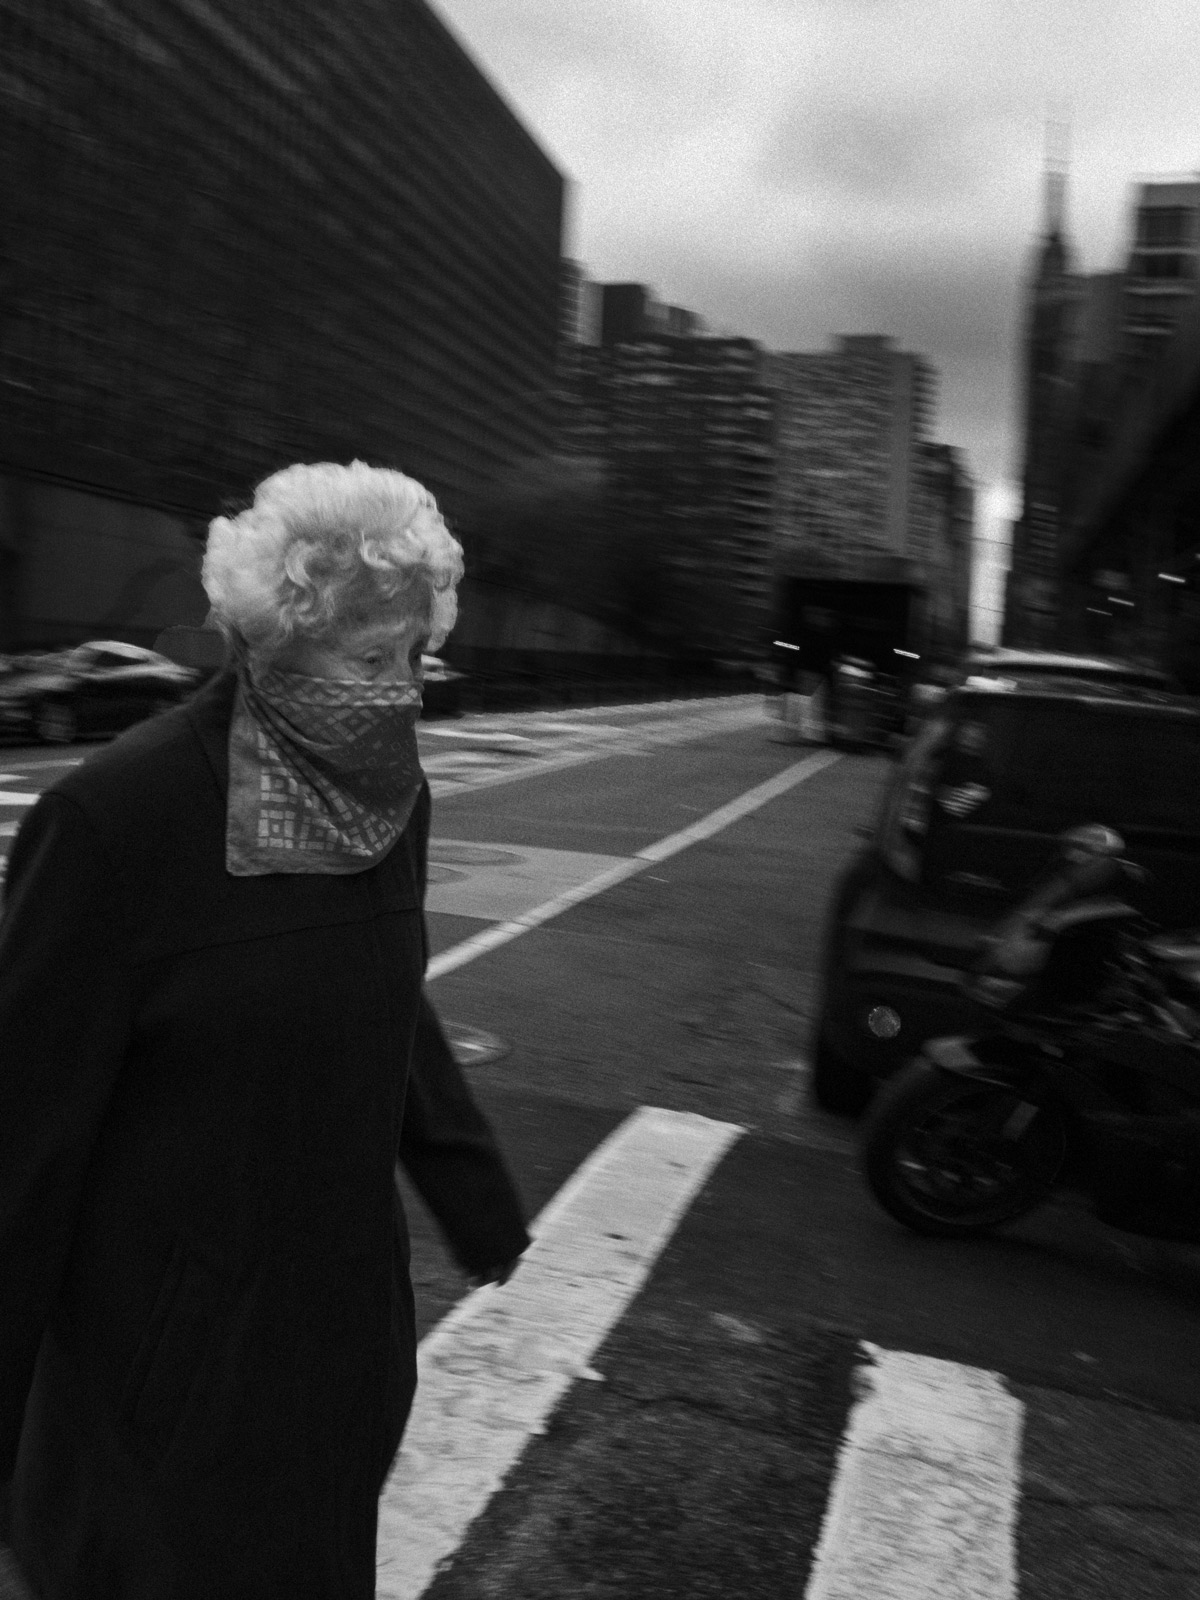 Joshua Olley captures the eerie reality of Manhattan under lockdown